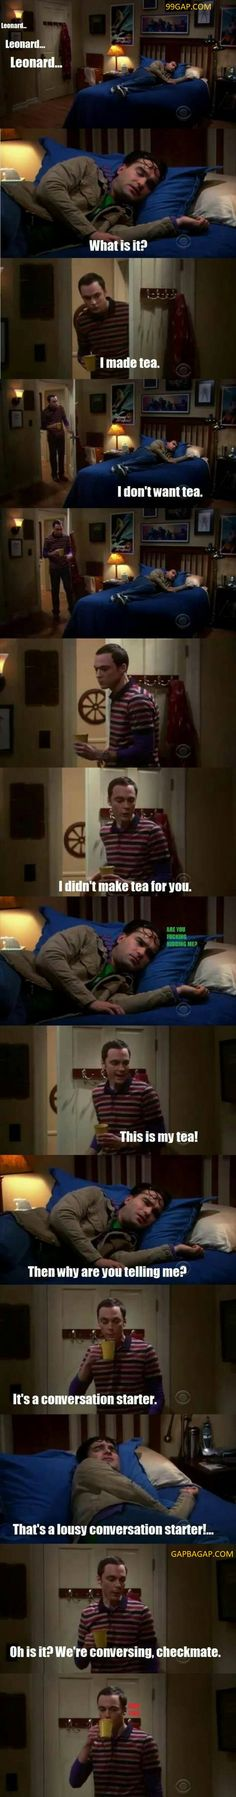 #FunnyPictures Collection From #TheBigBangTheory #funnymemes